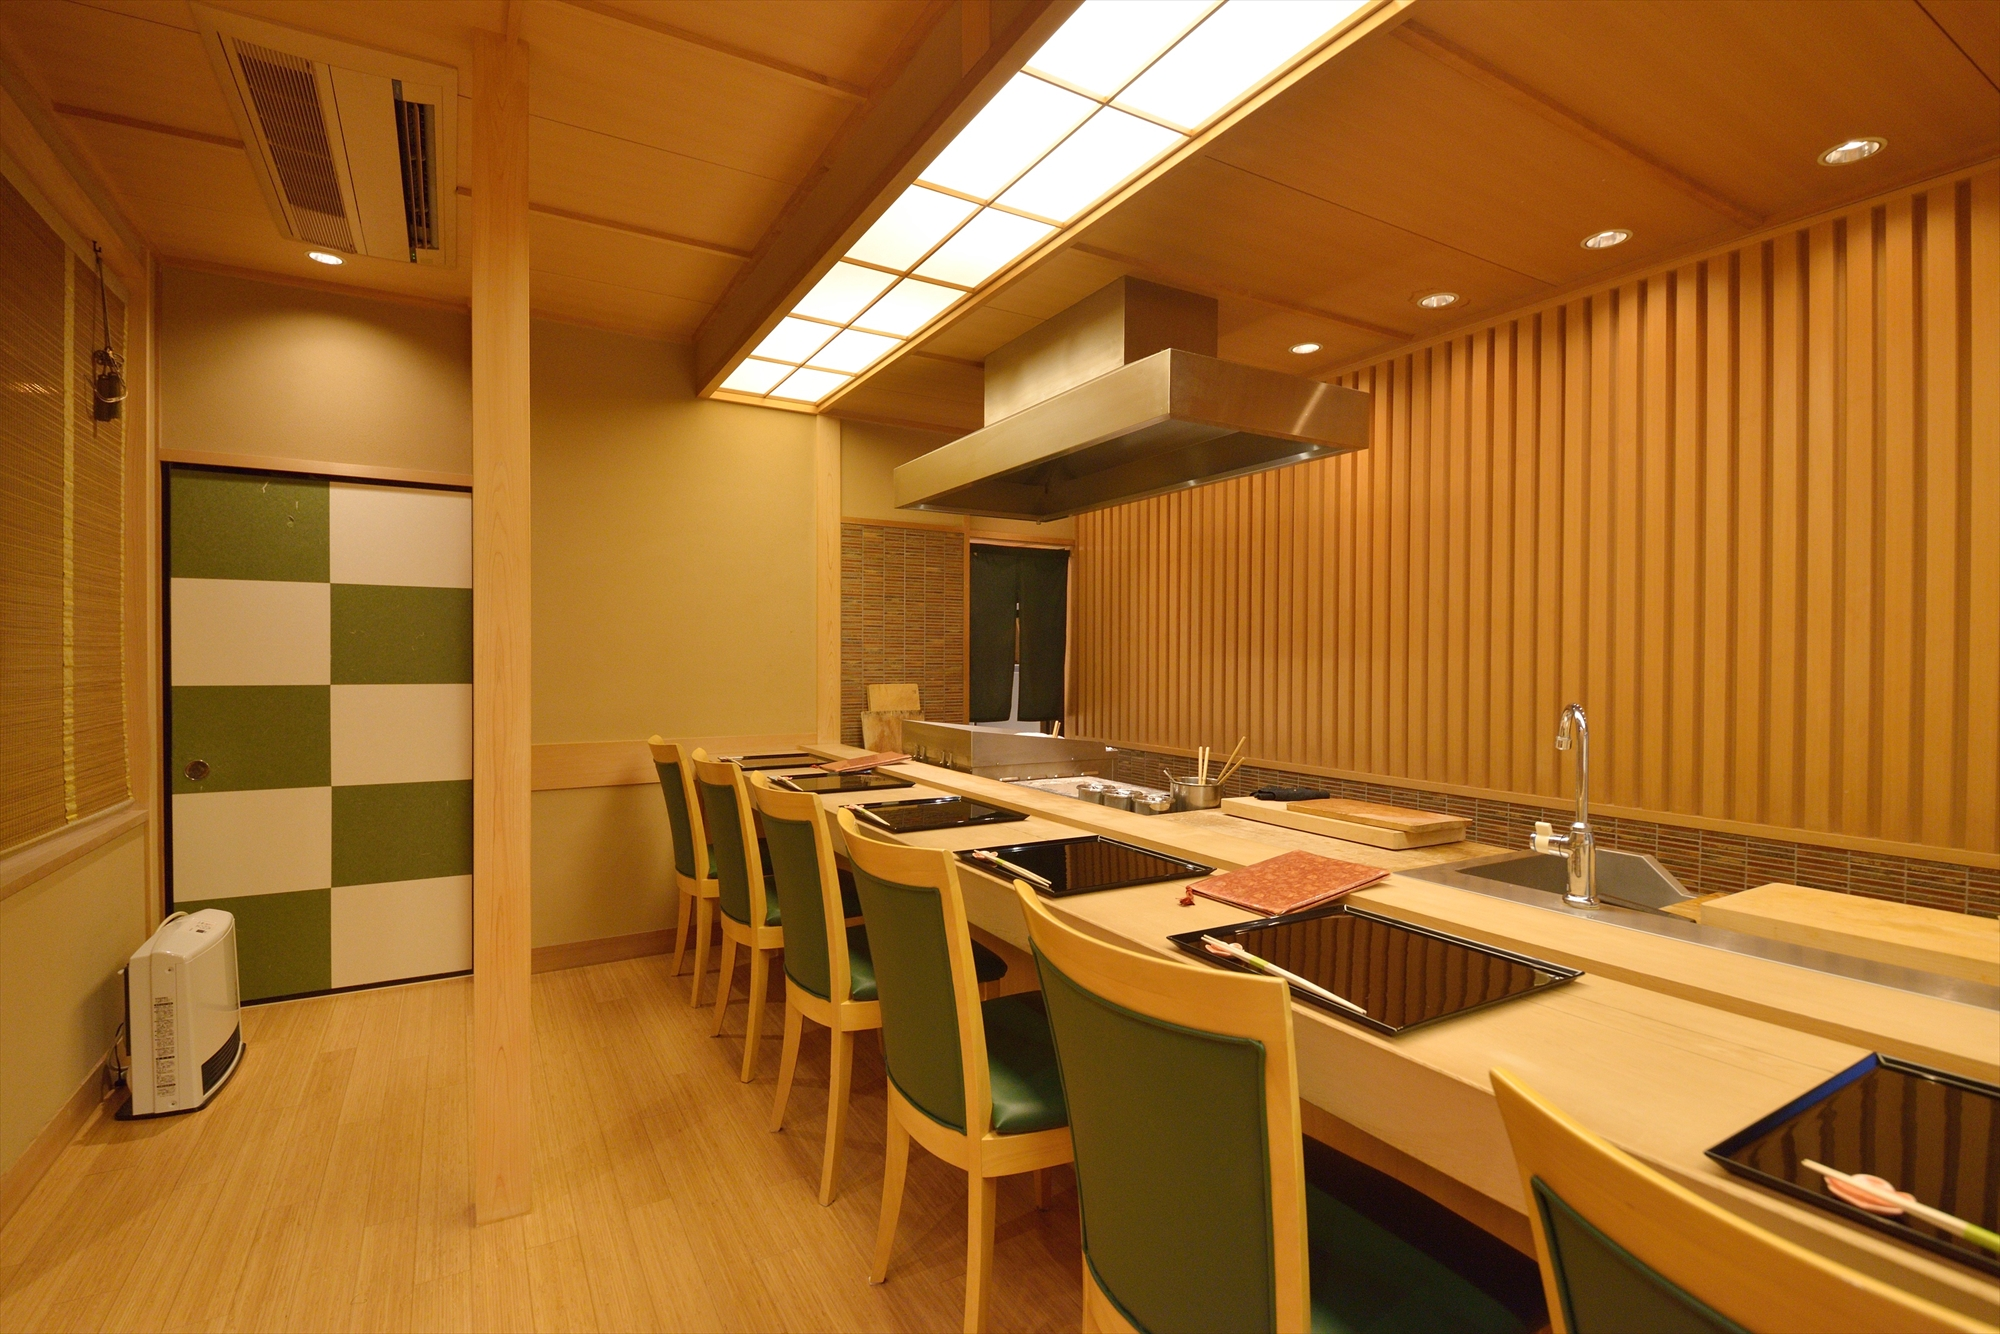 Jikishinbo Saiki interior counter table